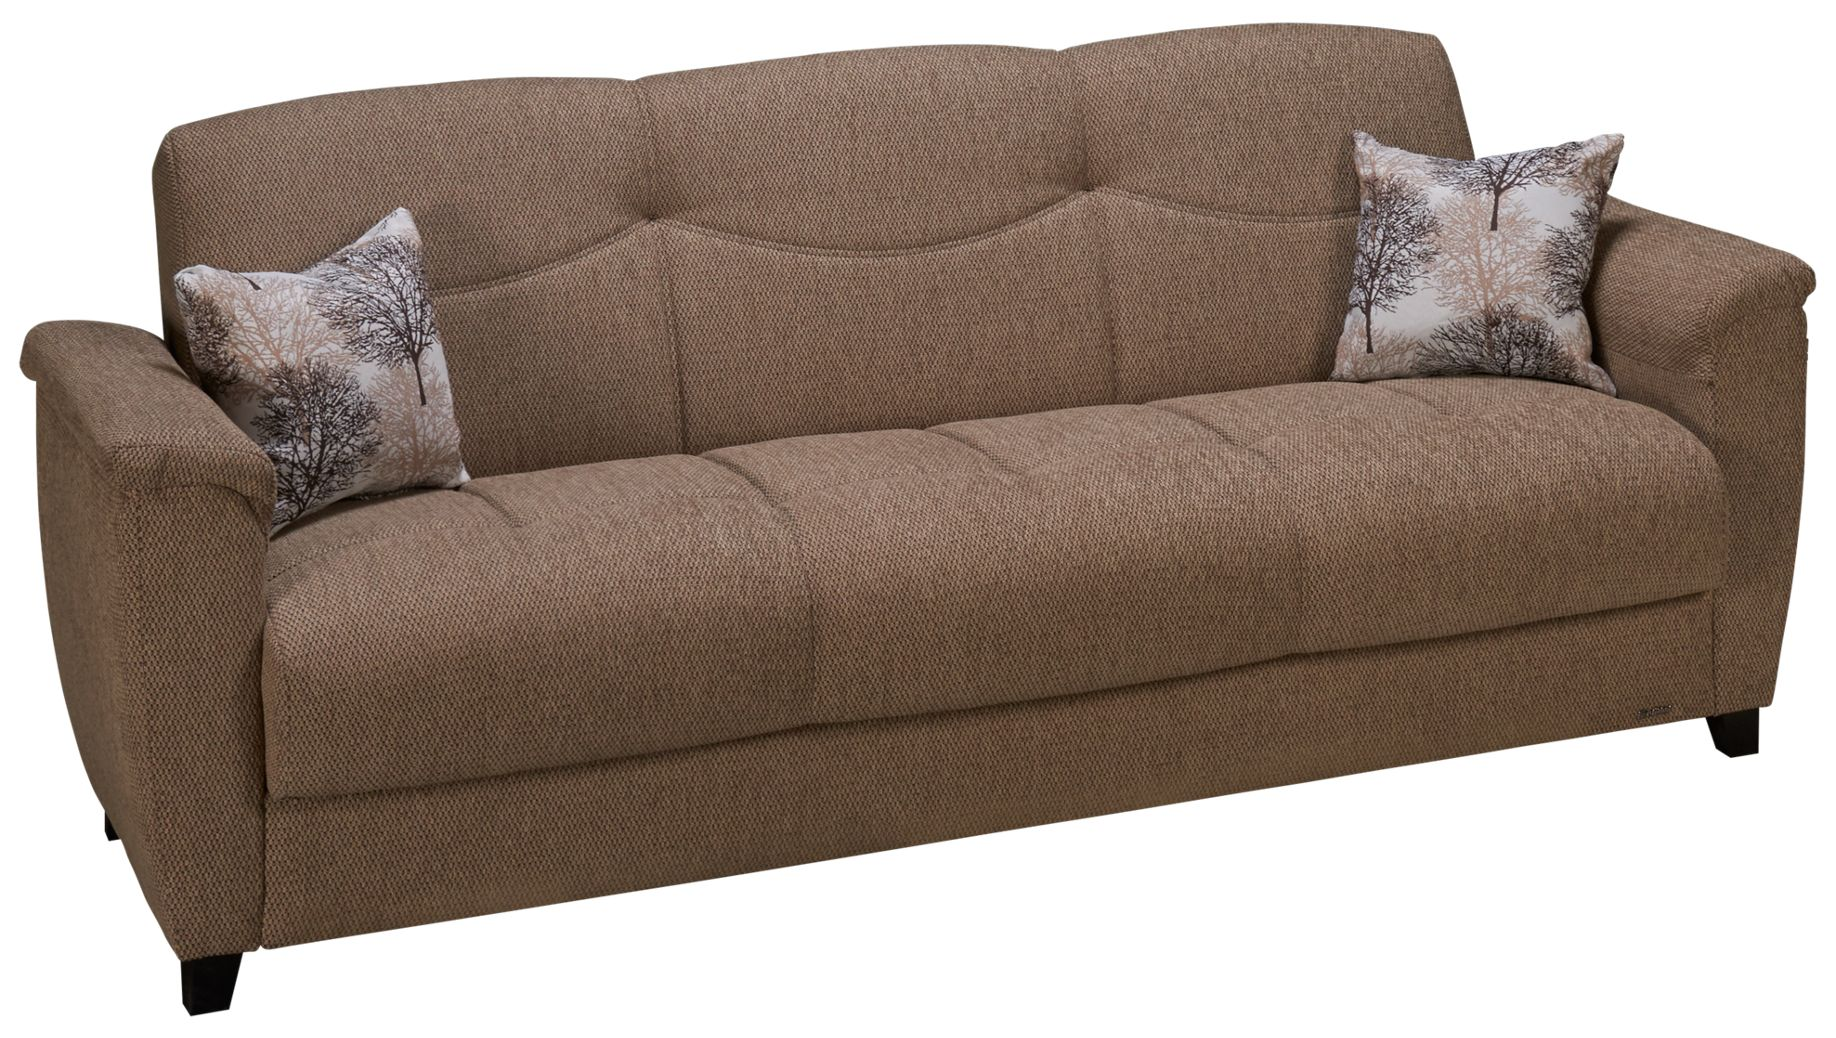 Convertible sofa with storage convertible sofa bed with for Aspen convertible sectional storage sofa bed